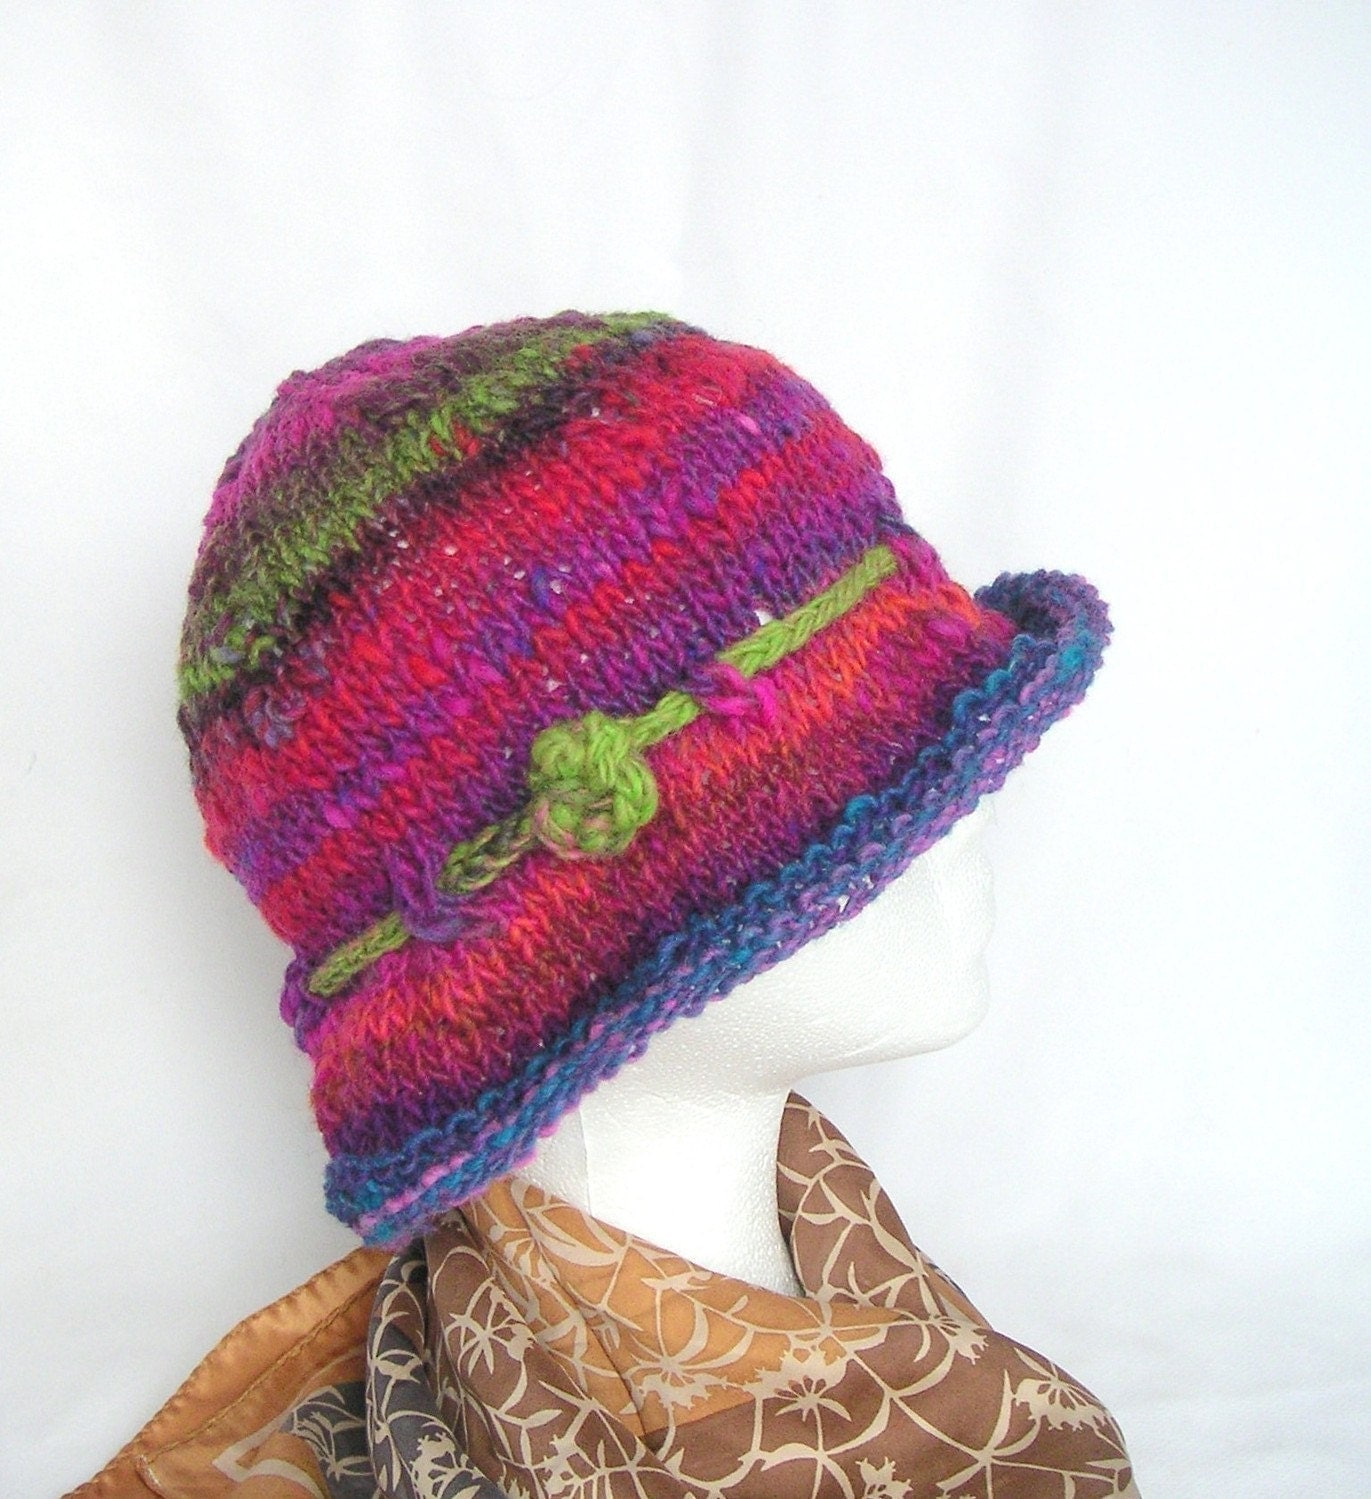 Easy Knitting Patterns Instructions : Easy knitting patterns for hats « free